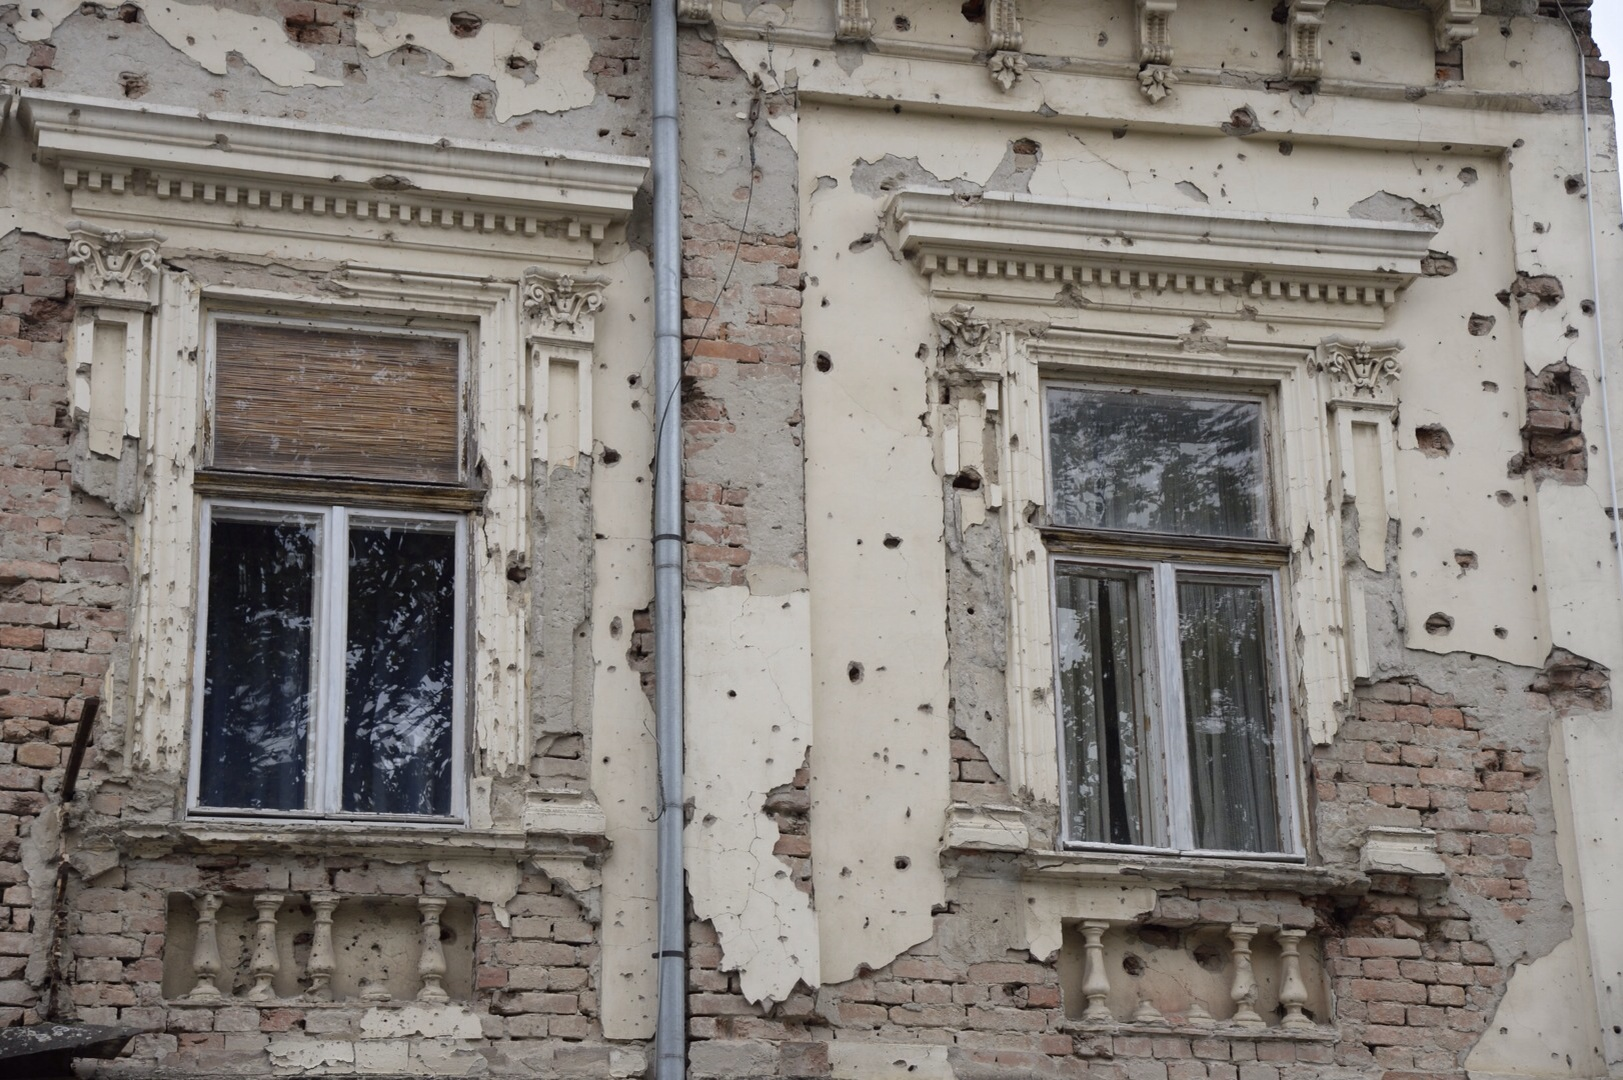 Another building with bombing damage in Vukovar, Croatia